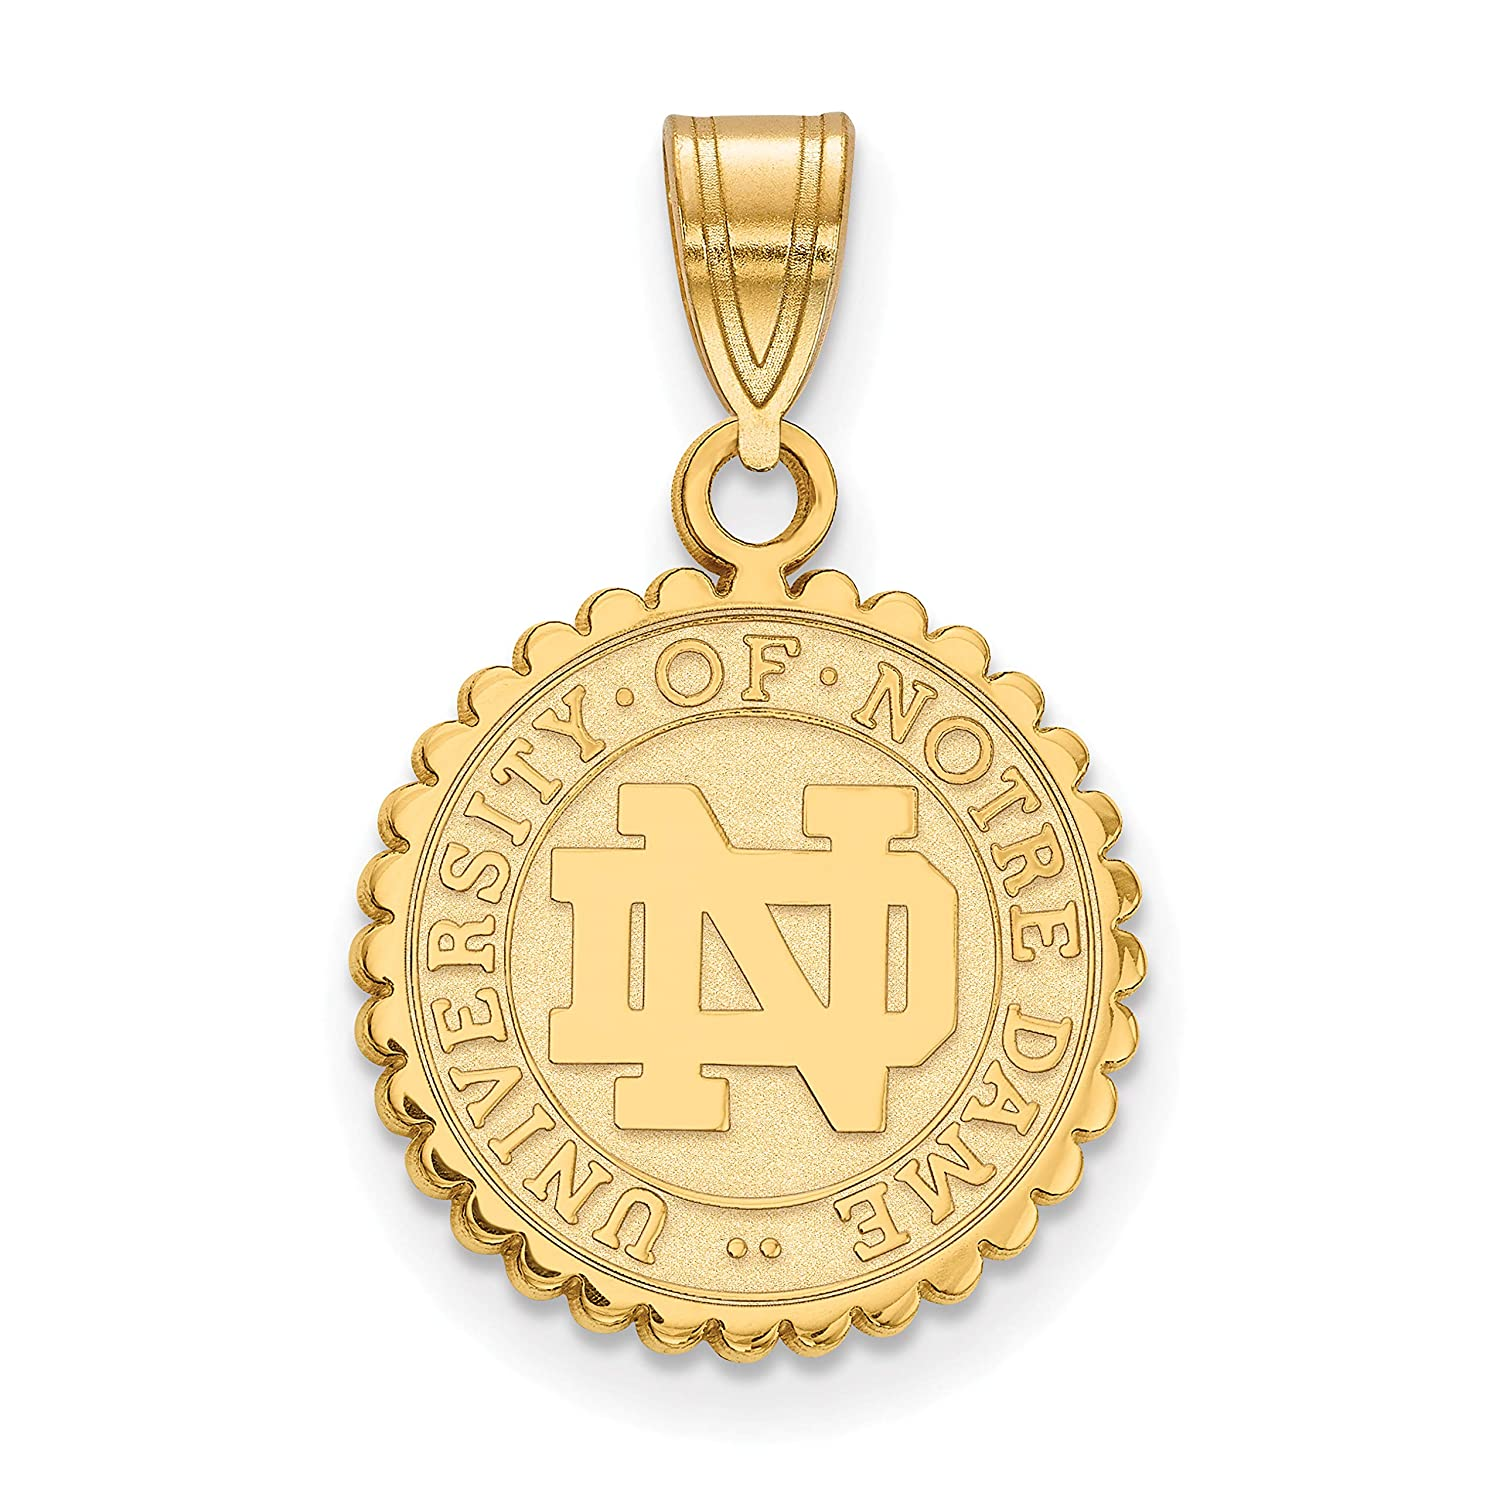 University of Notre Dame Fighting Irish School Seal Pendant in Gold Plated Sterling Silver 16x15mm